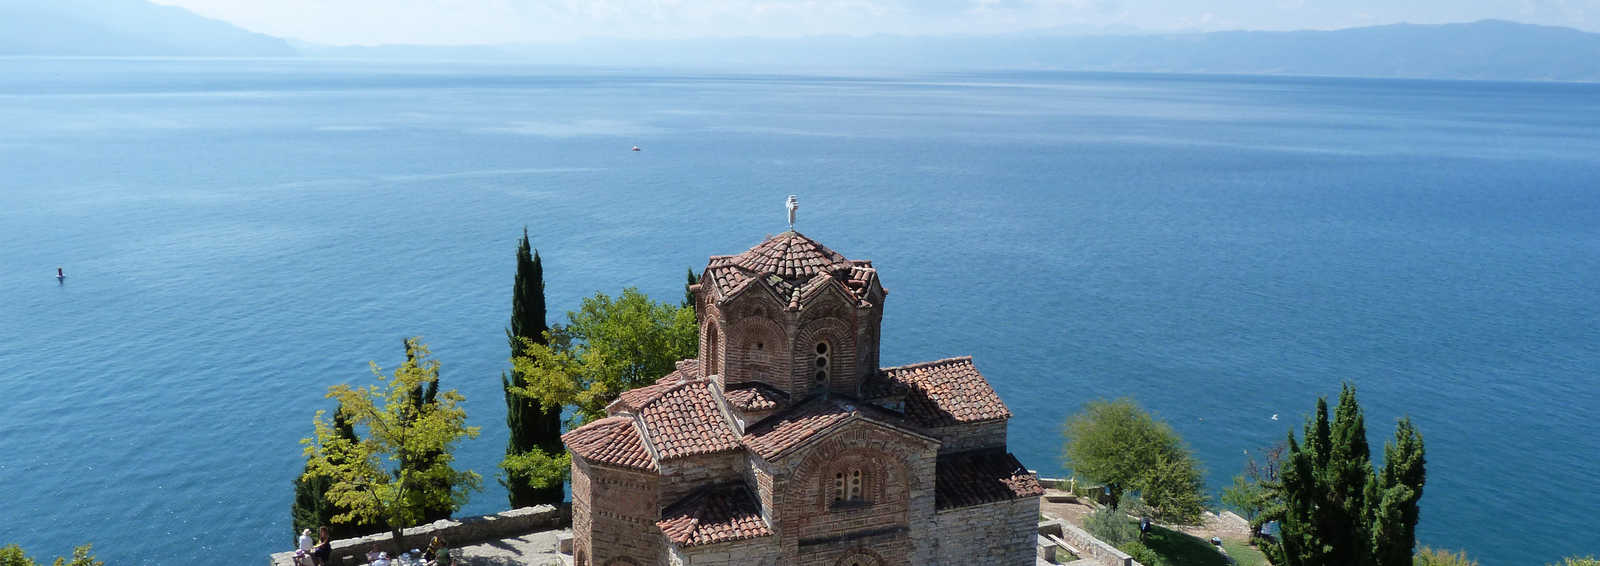 Church of St John at Kaneo, on Lake Ohrid